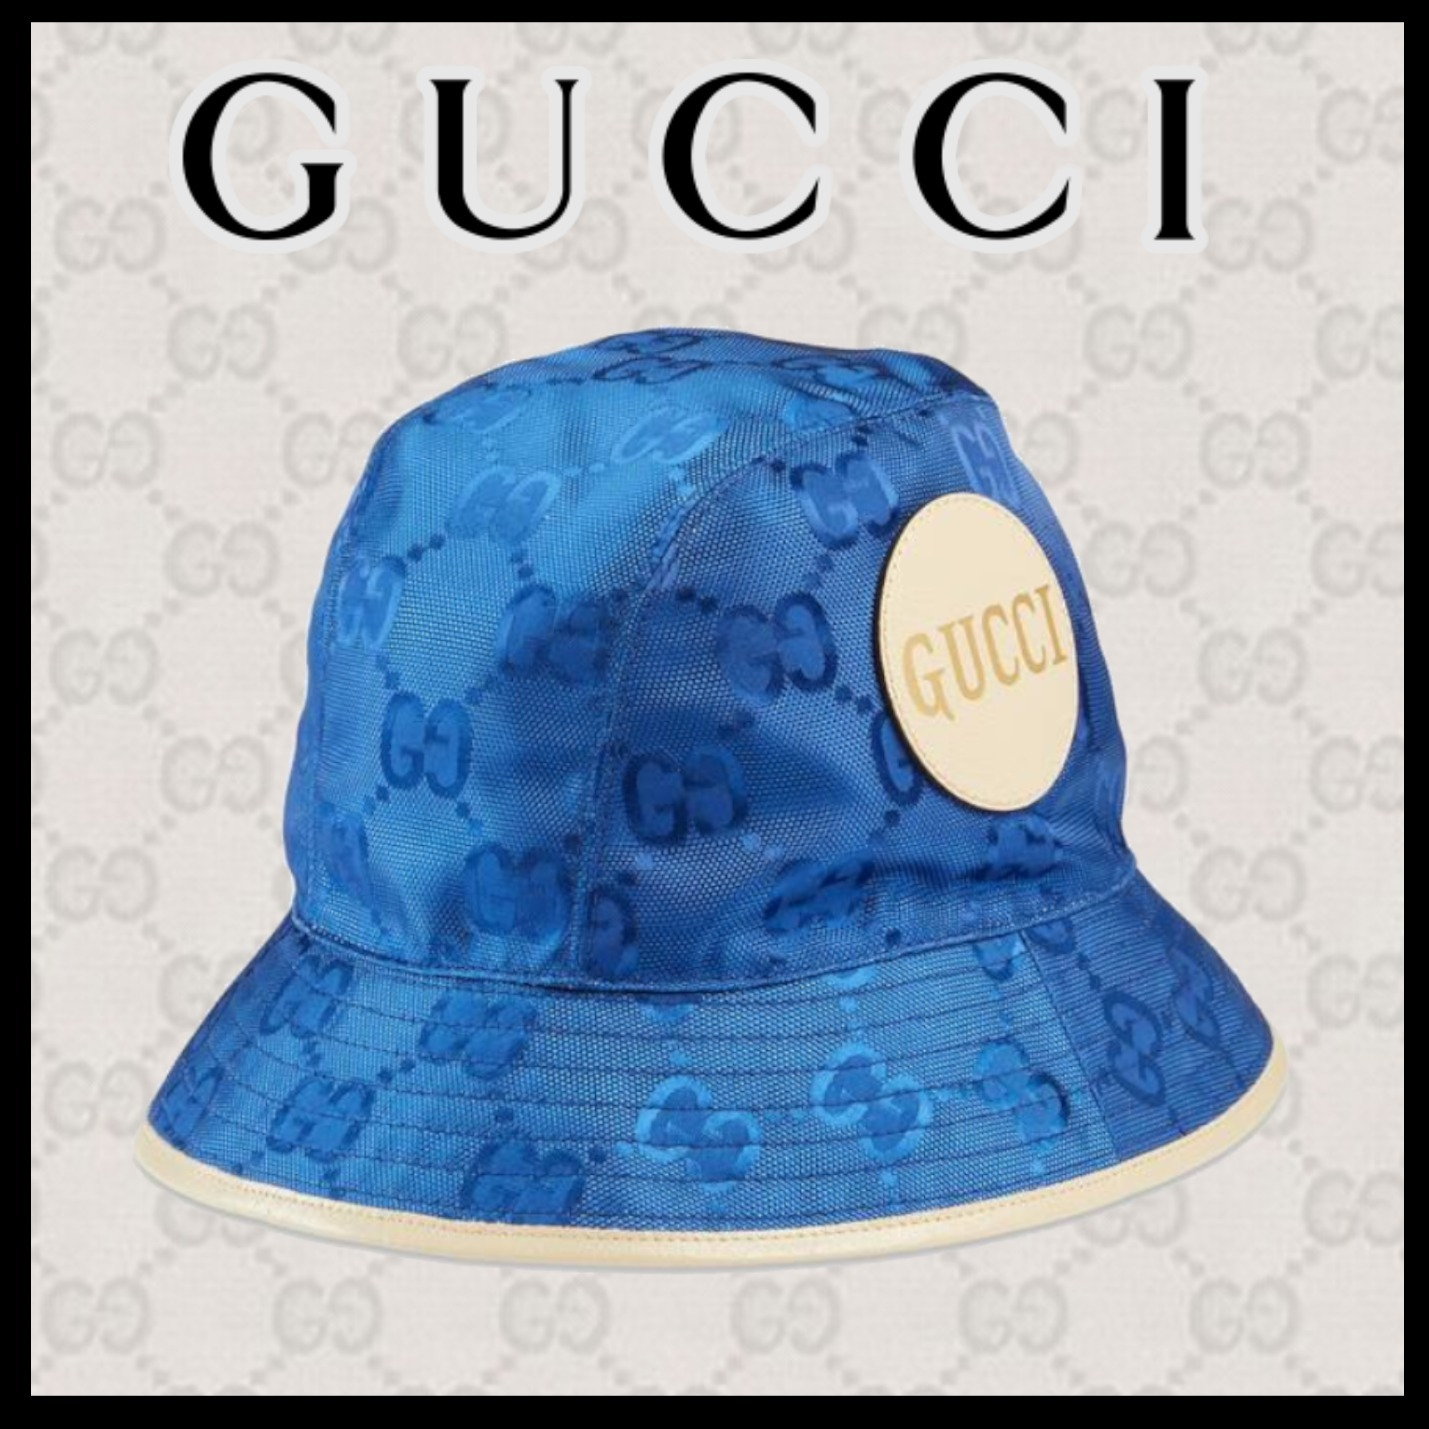 GUCCI★日本限定 Gucci Off The Grid フェドラハット (GUCCI/ハット) 627115 4HK79 4377